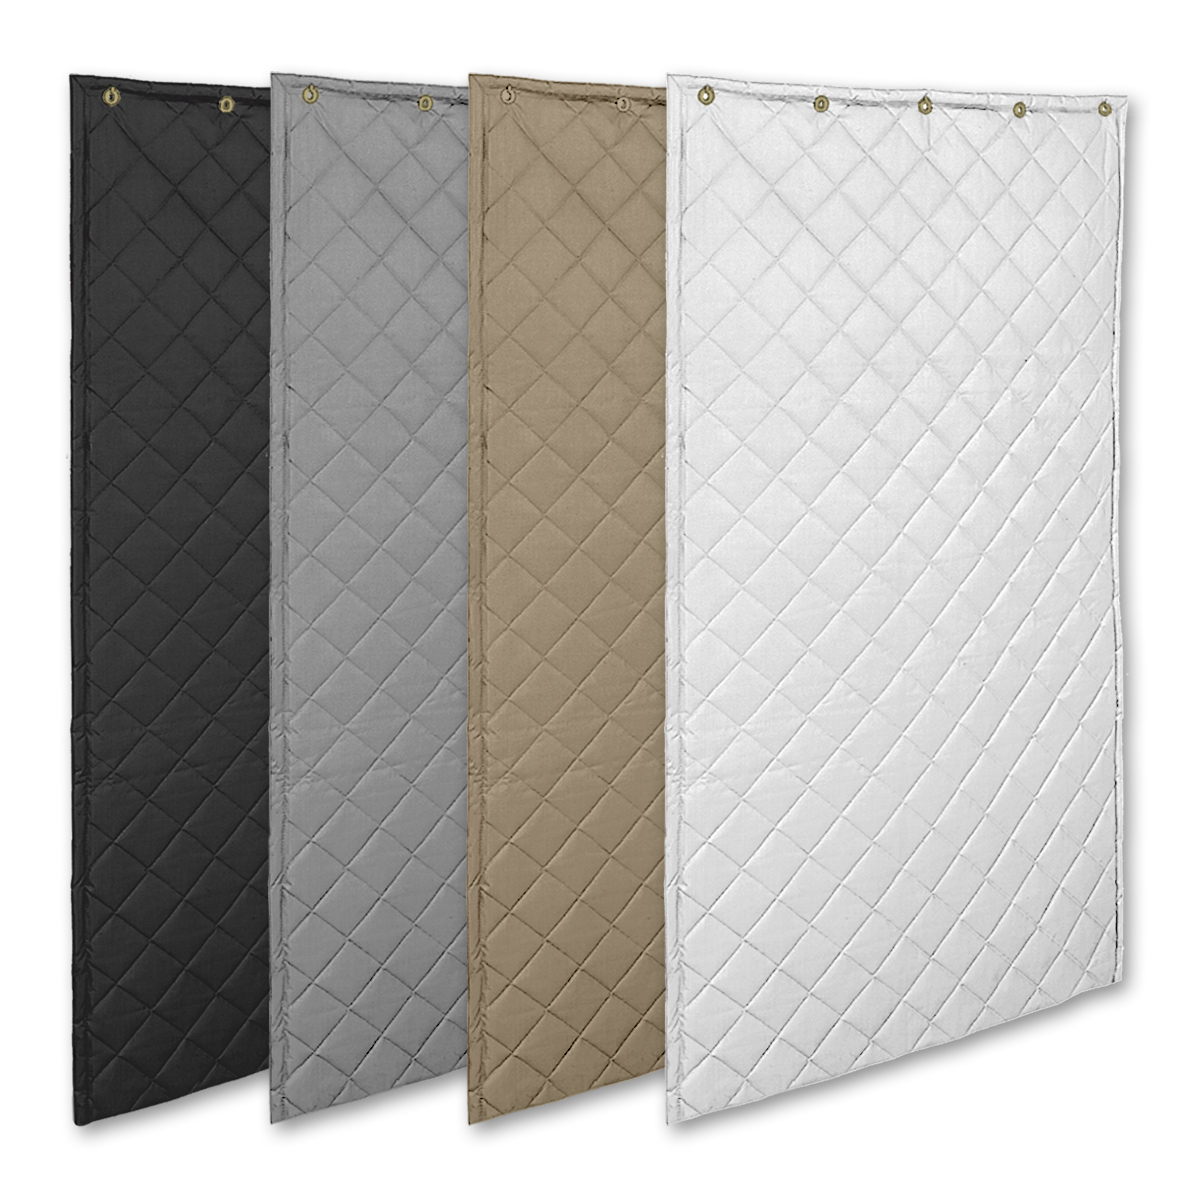 Acoustic Curtain Wall Combination Acoustic Blankets Panels Barriers Curtains Hush